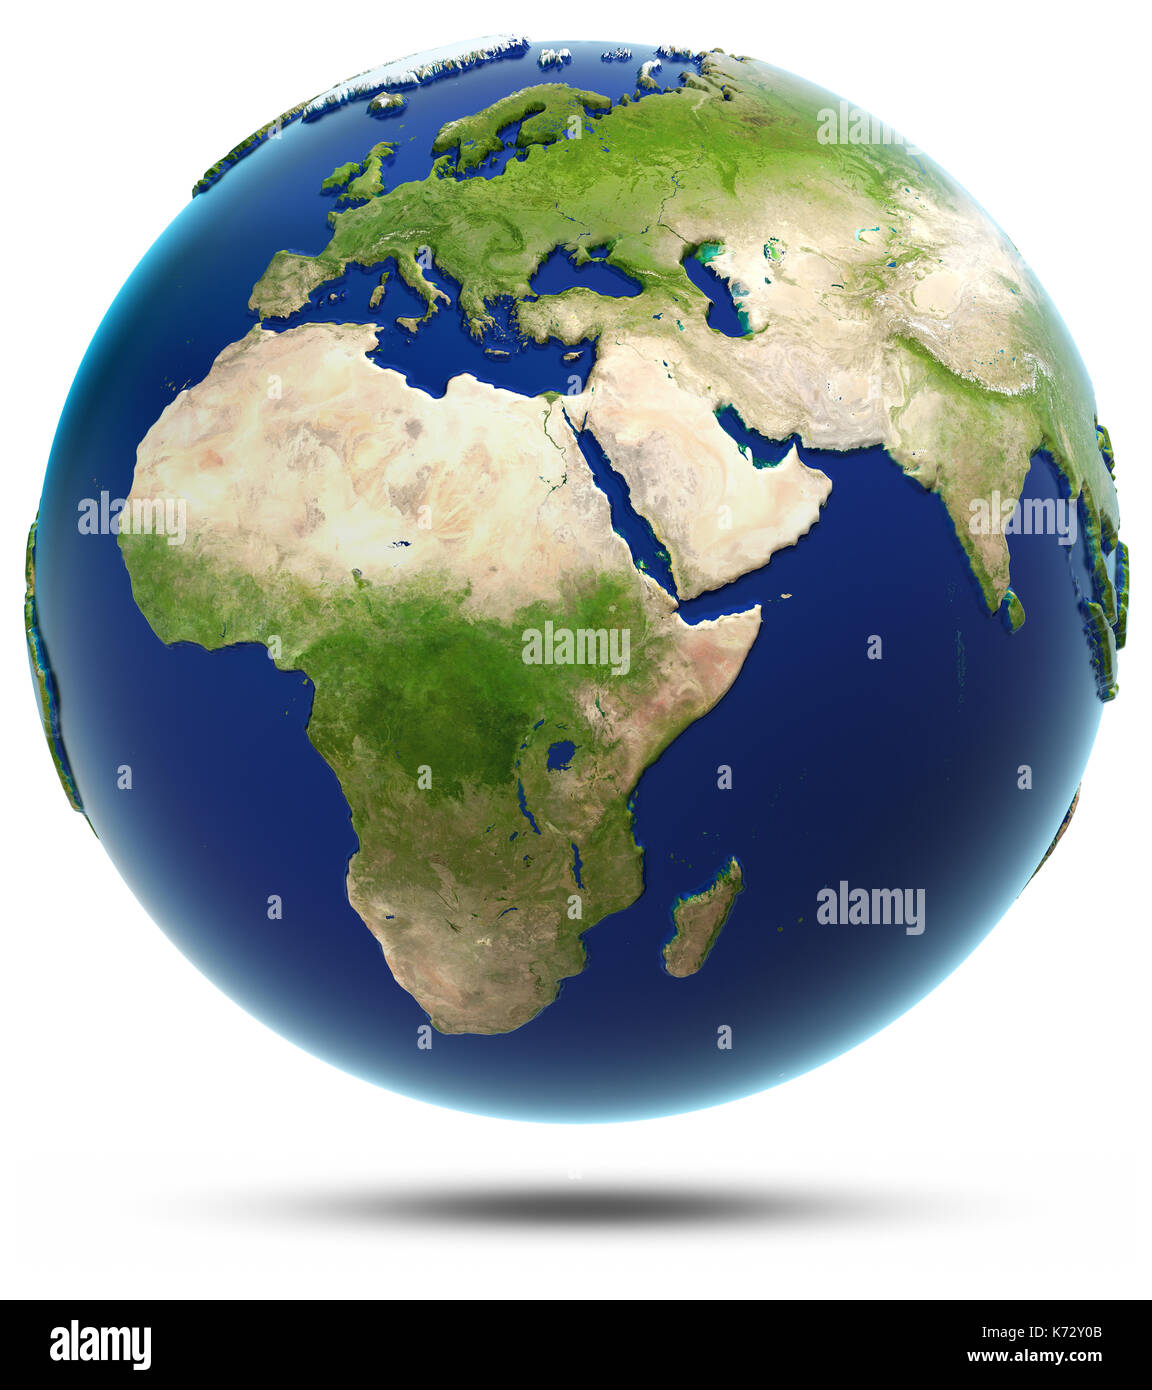 Earth model - Africa and Eurasia 3d rendering - Stock Image